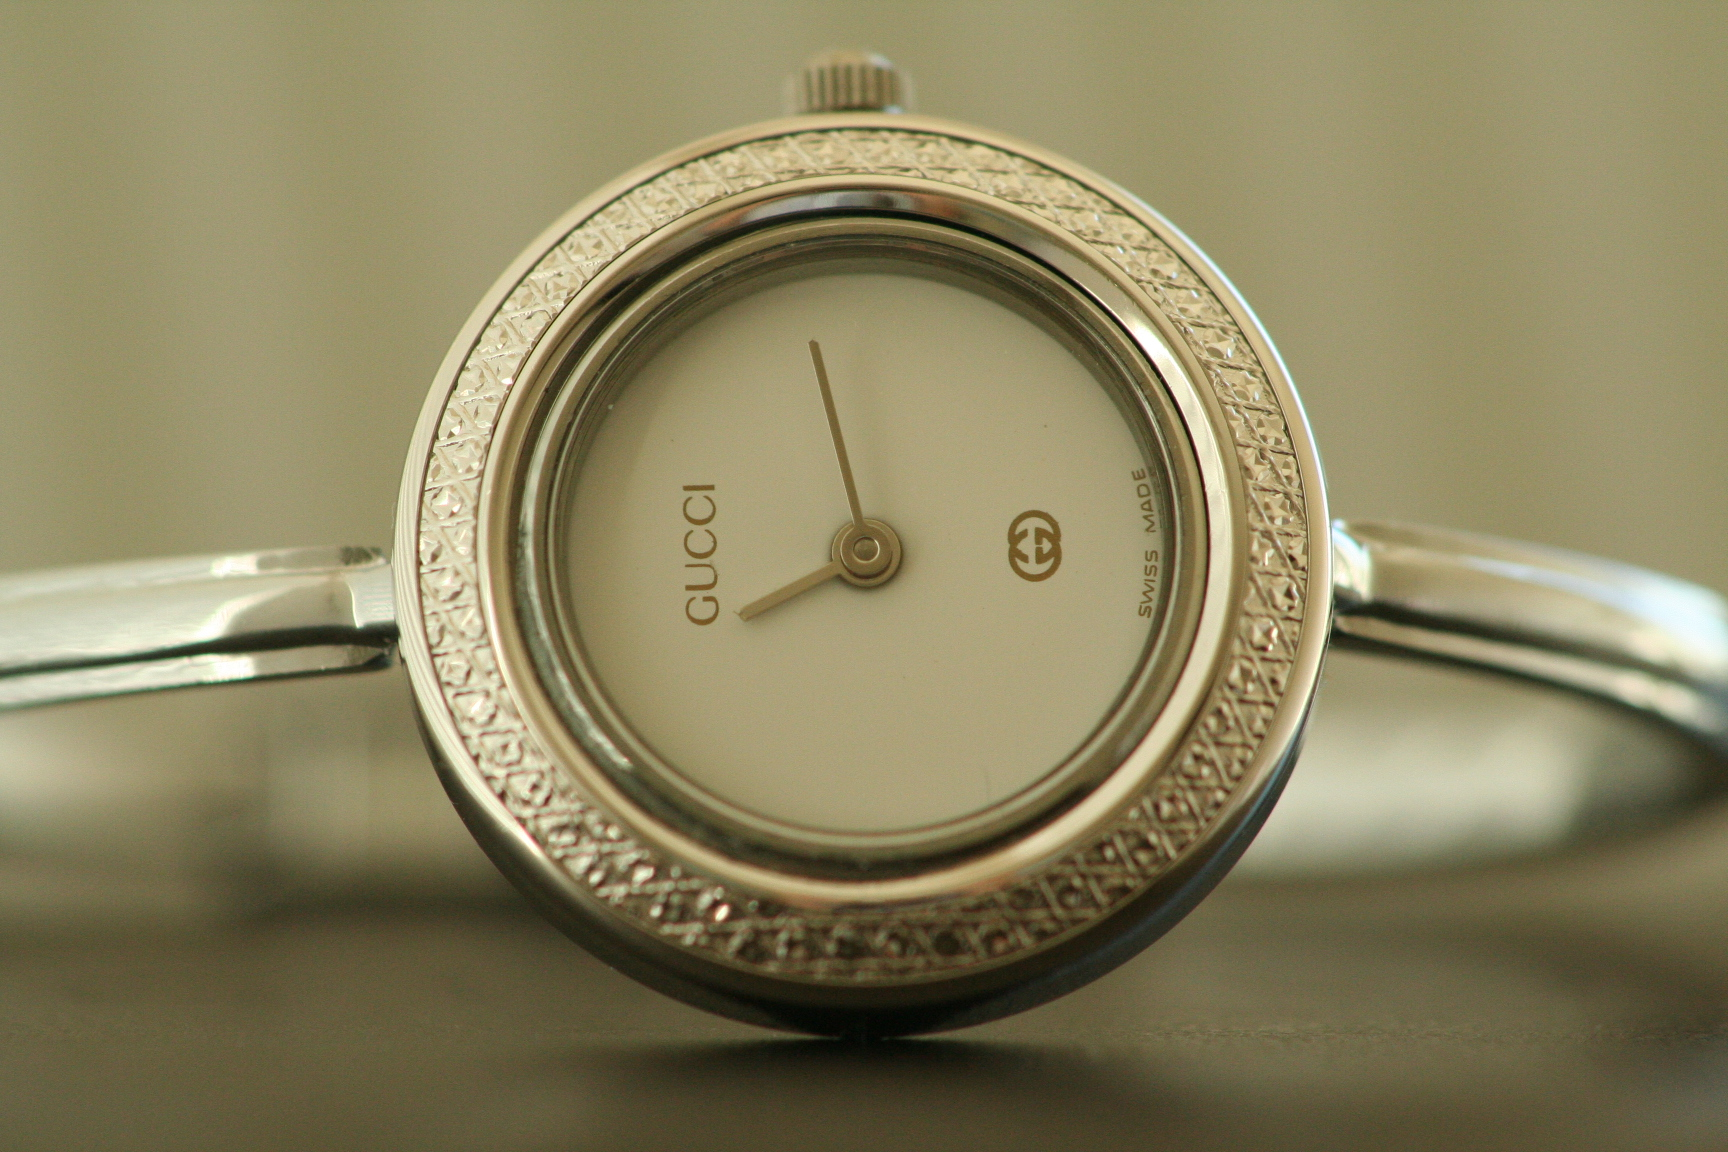 Top 10 Best Gucci Watches for Women — Greatest Reviews for You